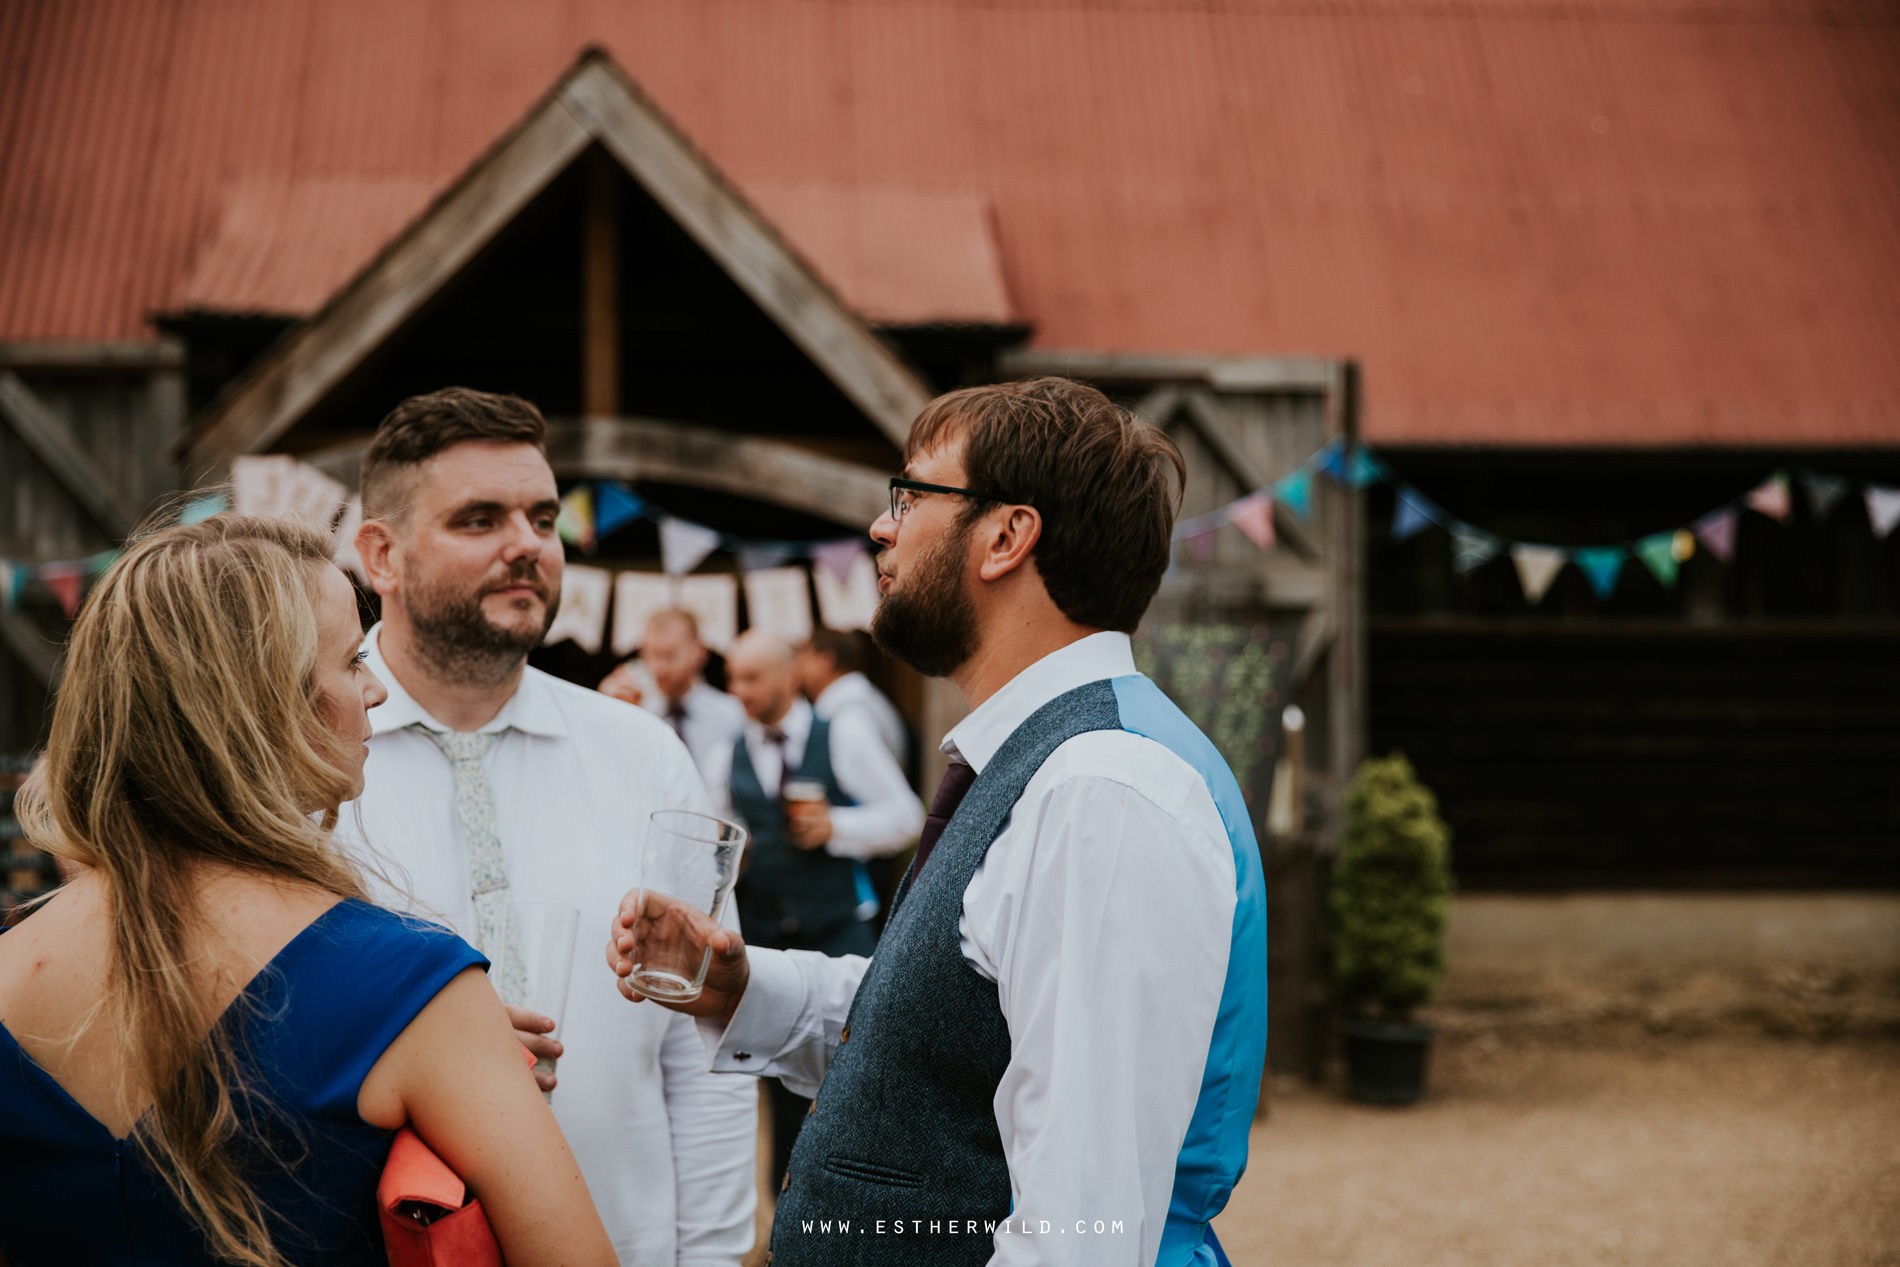 The_Red_Barn_Wedding_Kings_Lynn_Norfolk_IMG_2725.jpg